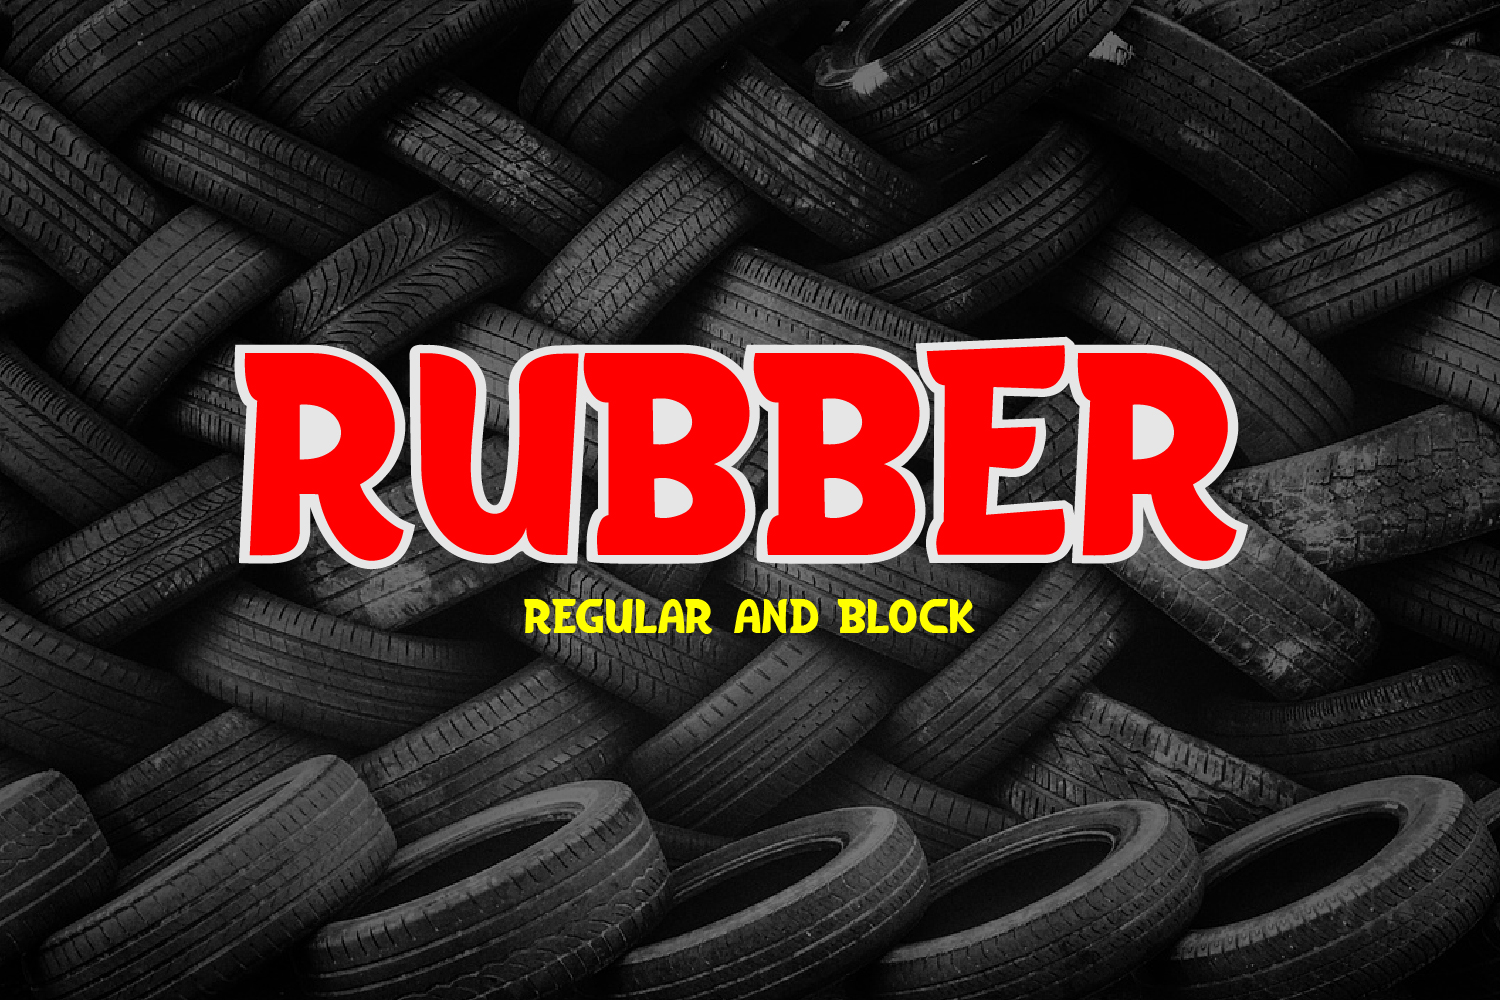 RUBBER example image 2